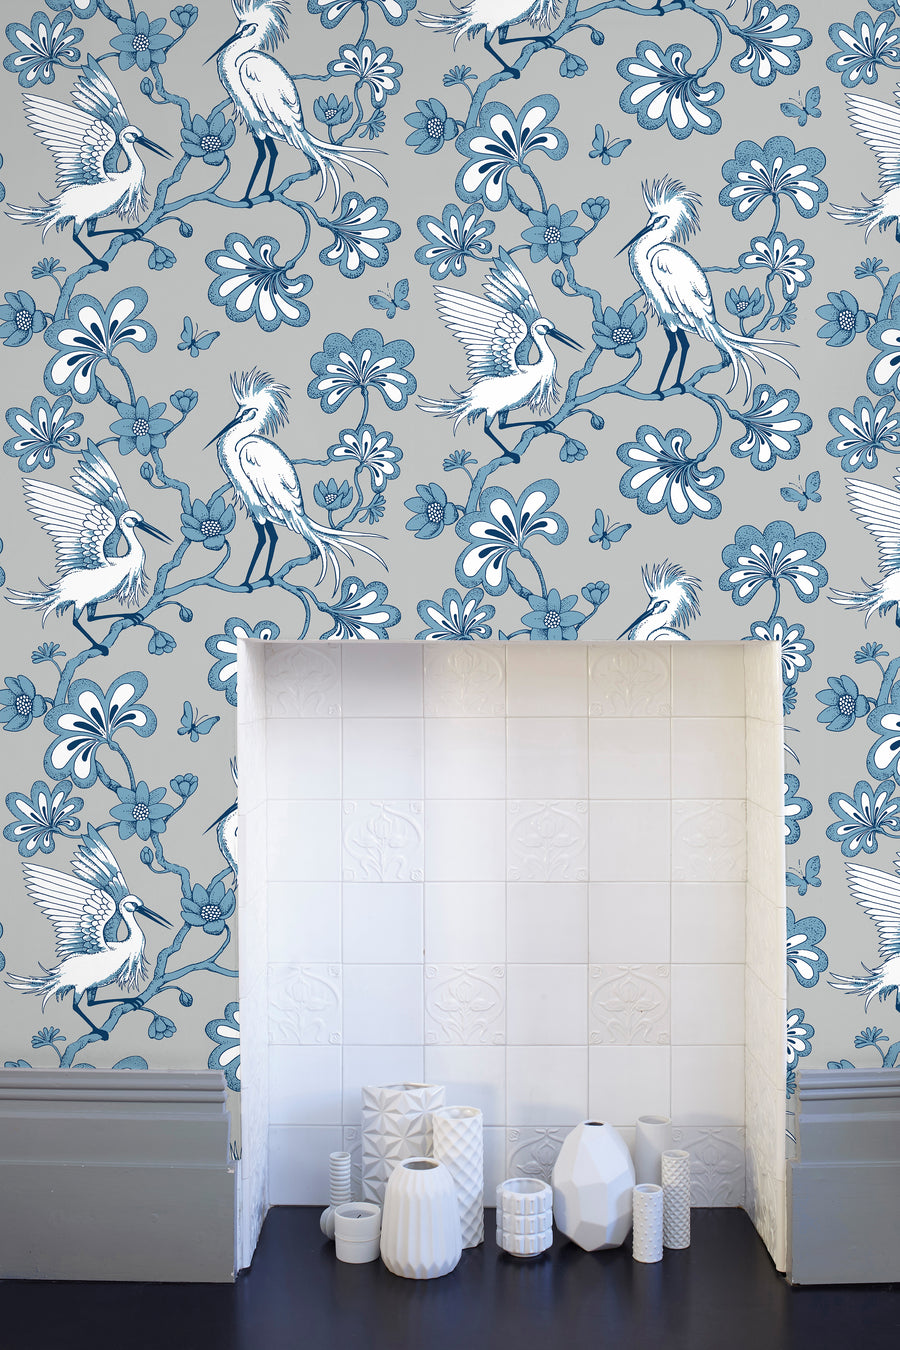 Egrets Wallpaper - Warm Grey & Blue